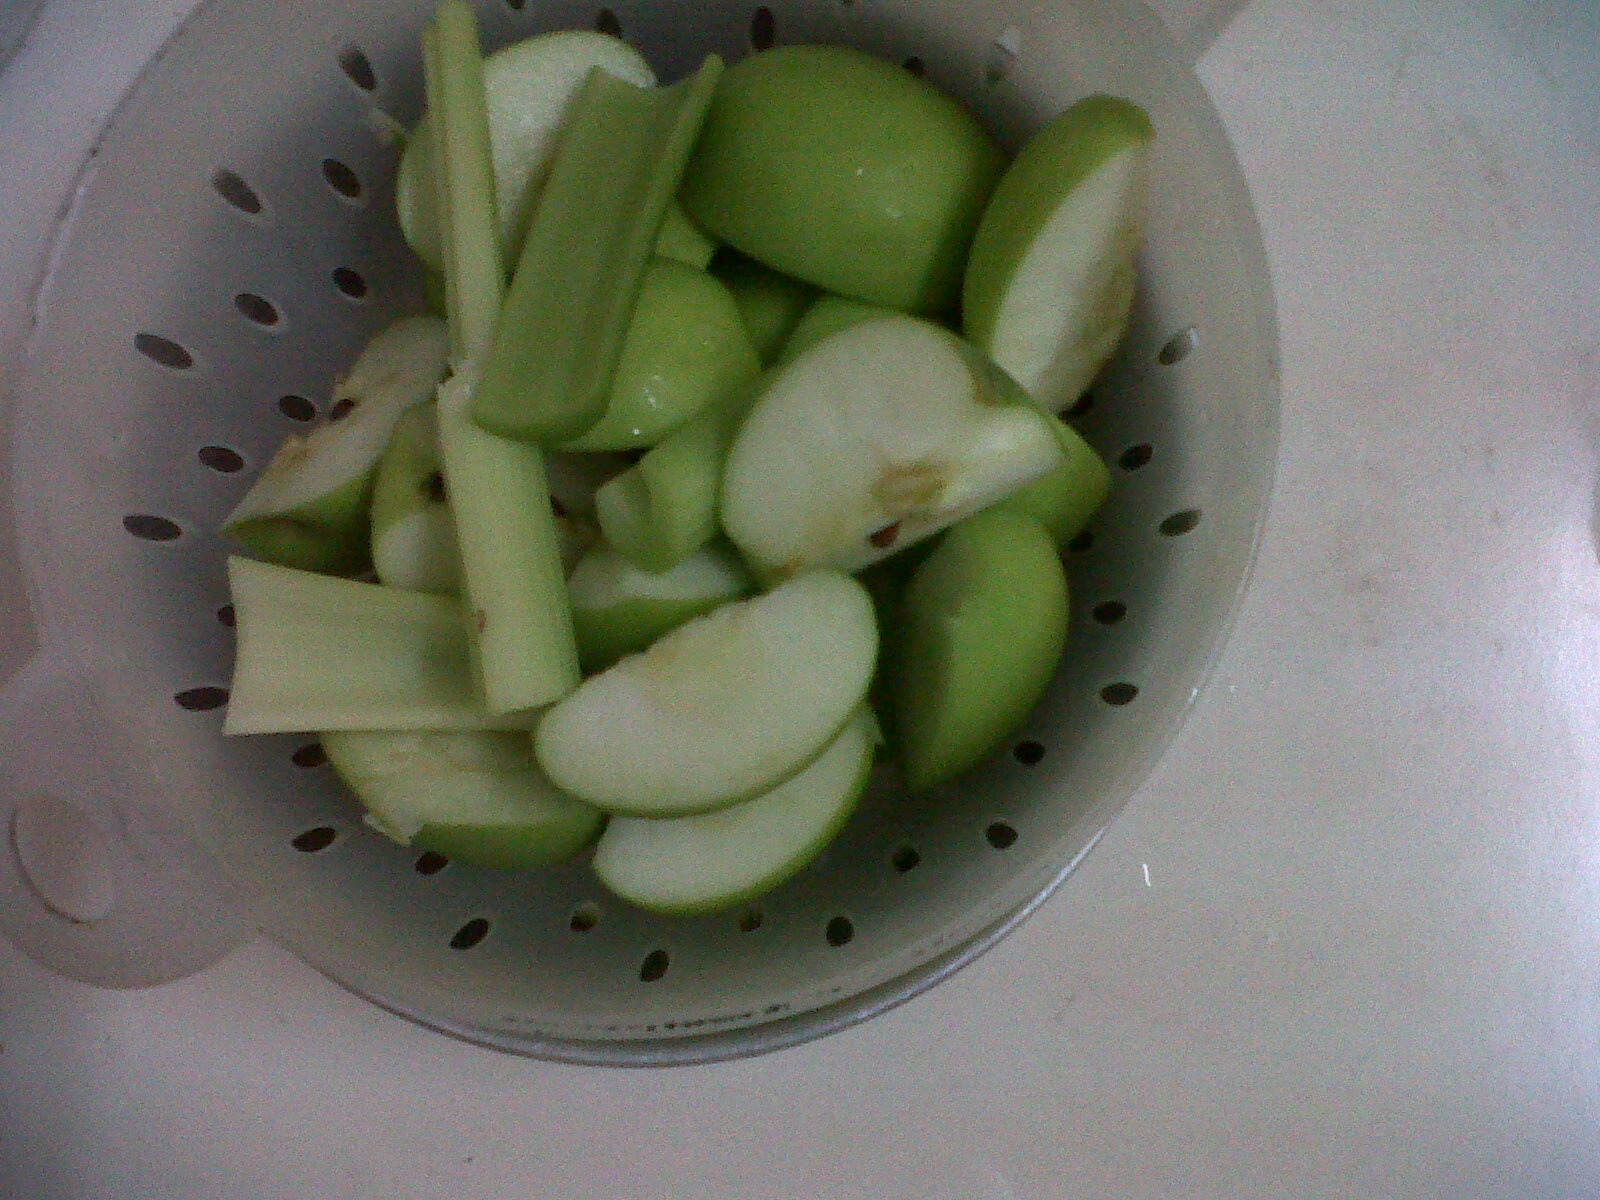 My Lil Dreamz Jus Apple Celery Good For Detox And Helps Reduce Weight